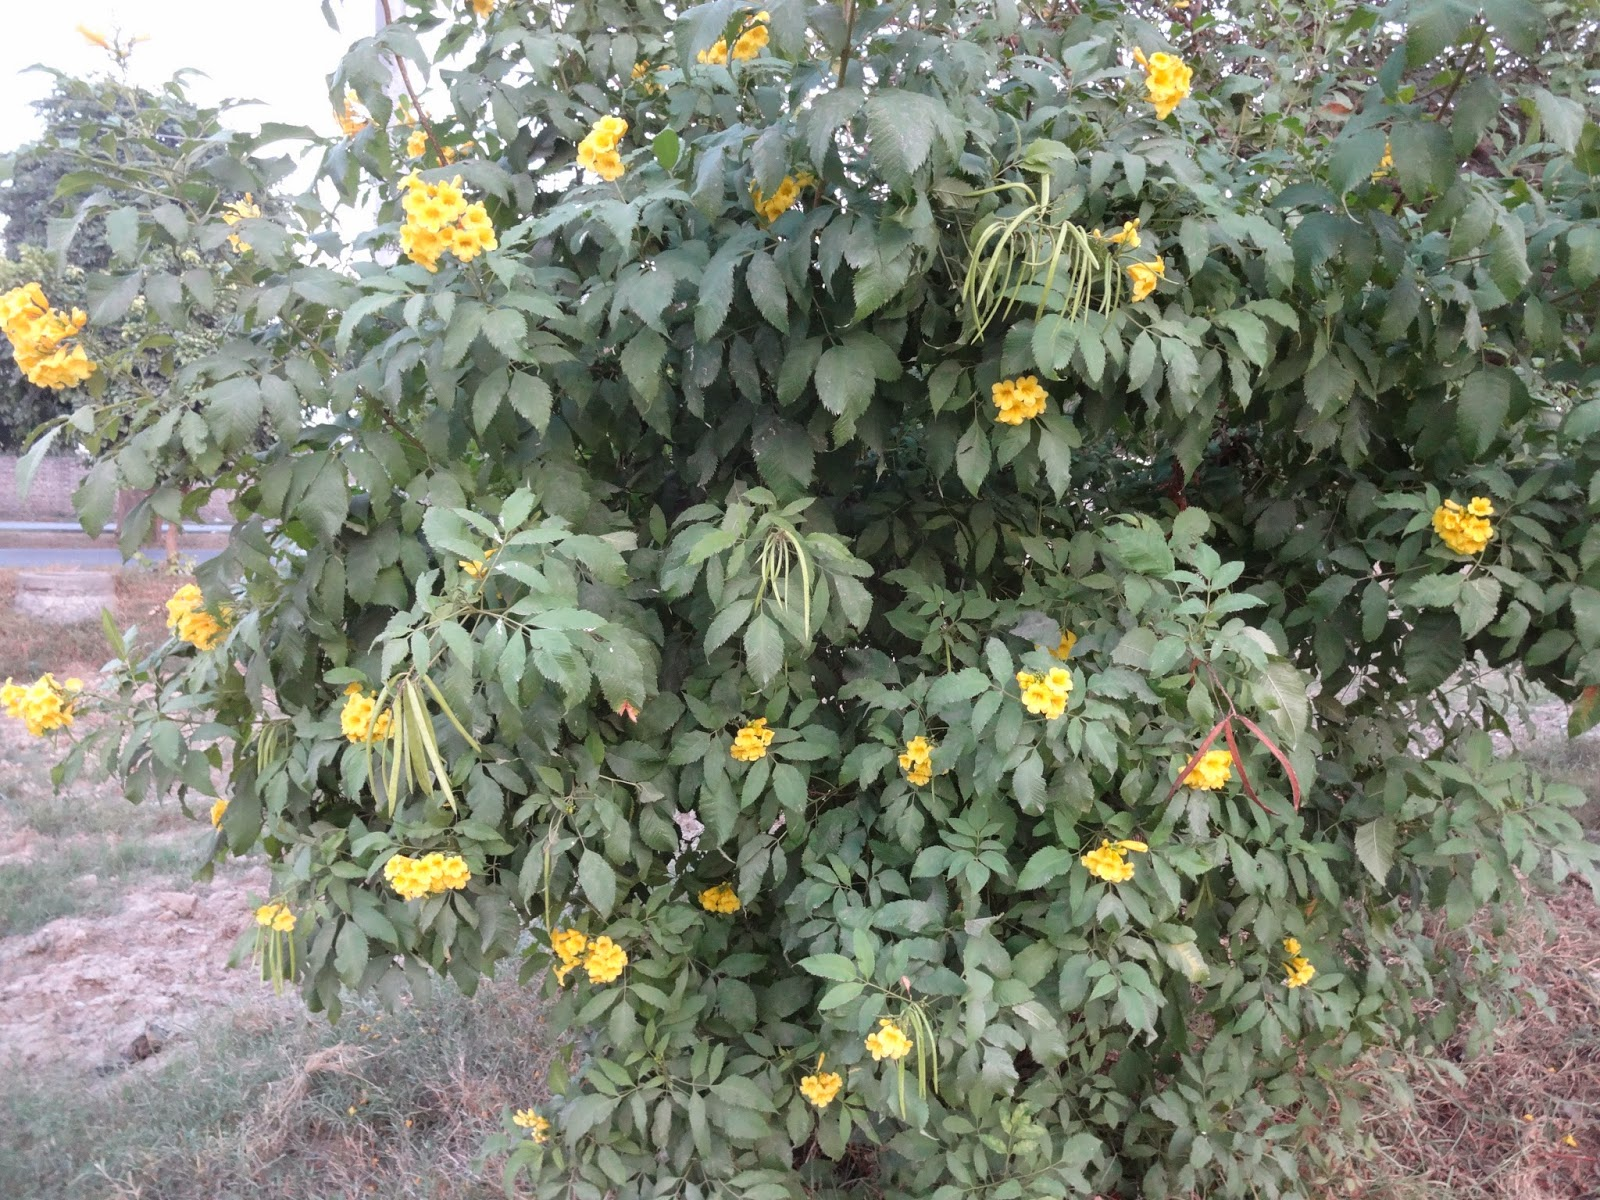 Plants of lahore tecoma stans yellow trumpet flowers shrub tikoma tecoma stans yellow trumpet flowers shrub tikoma mightylinksfo